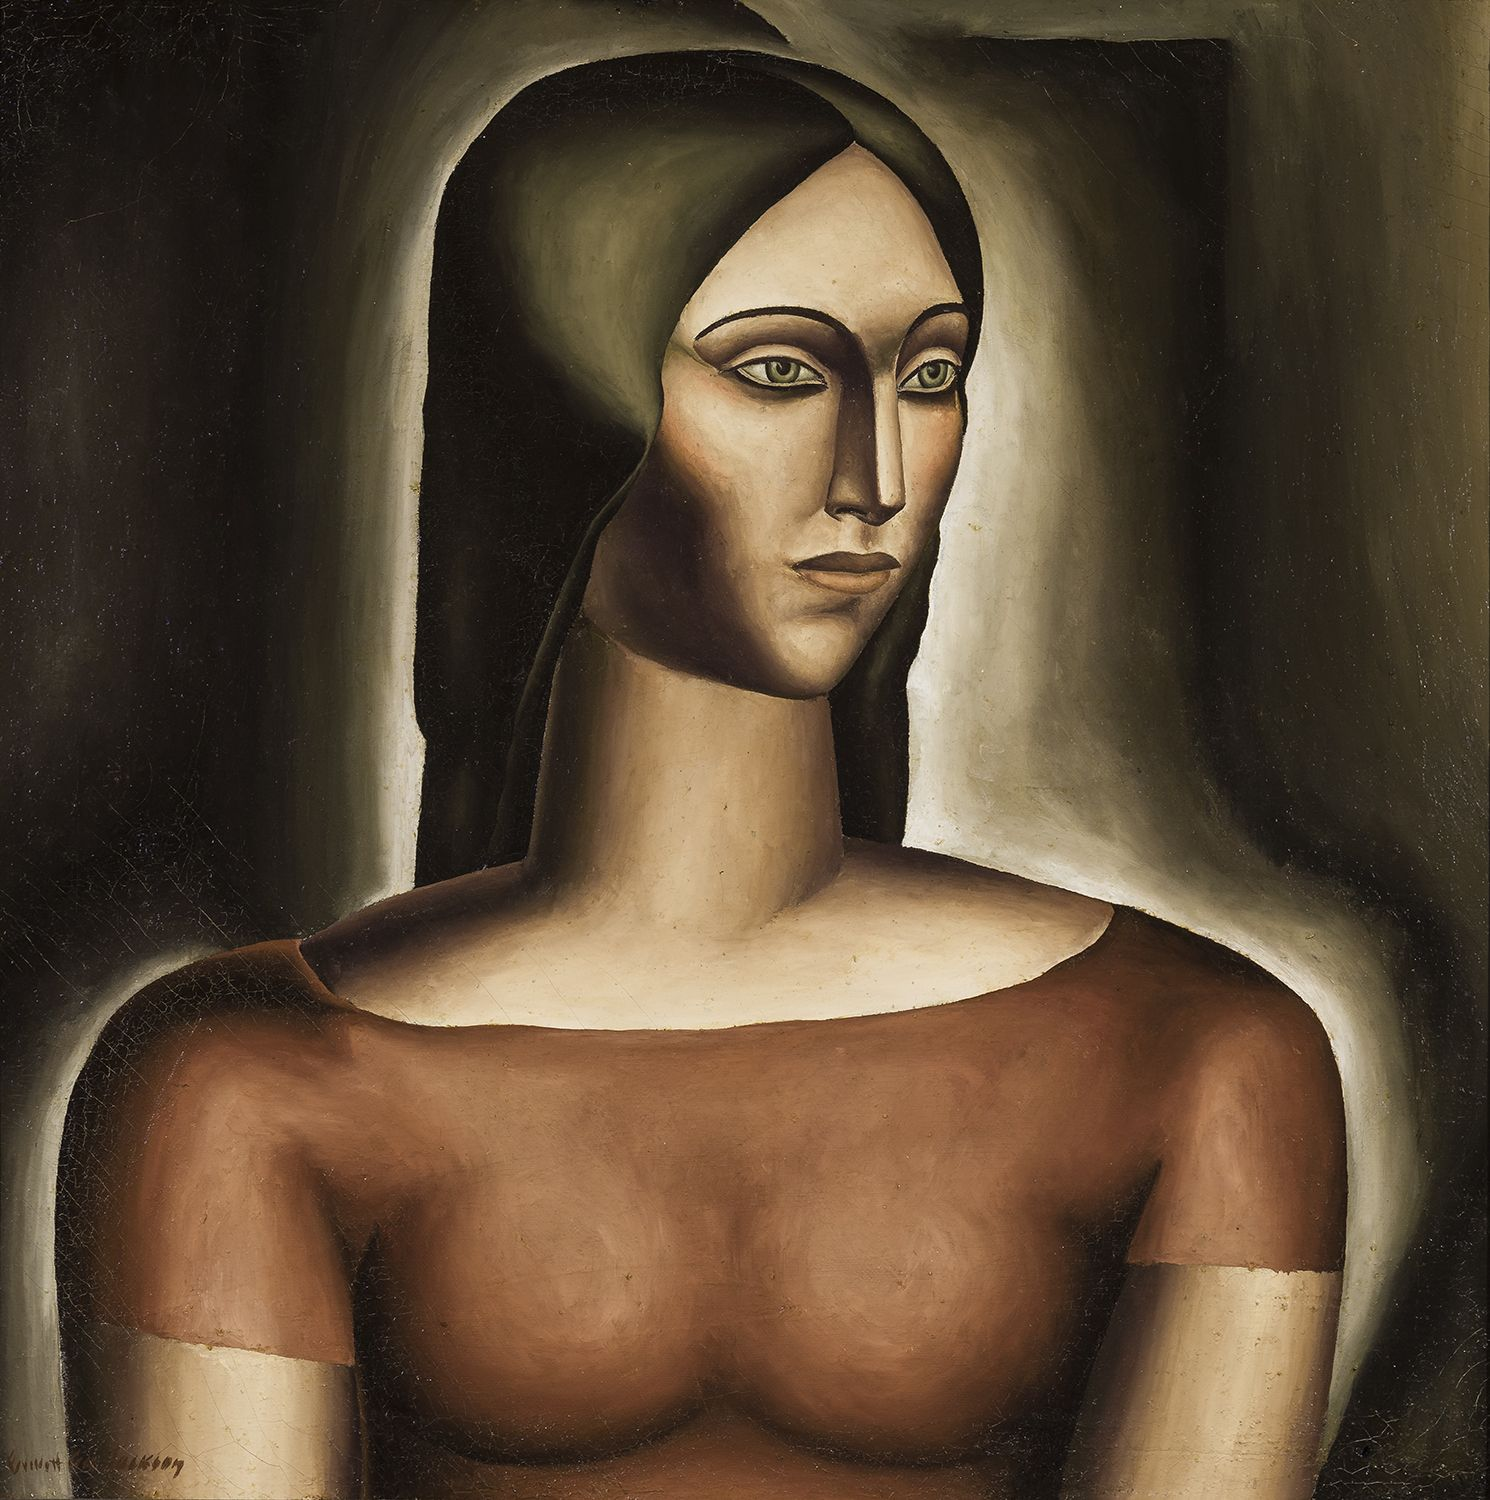 Head of a Woman, c. 1932, Oil on canvas, 20 1/8 x 20 3/16 in.